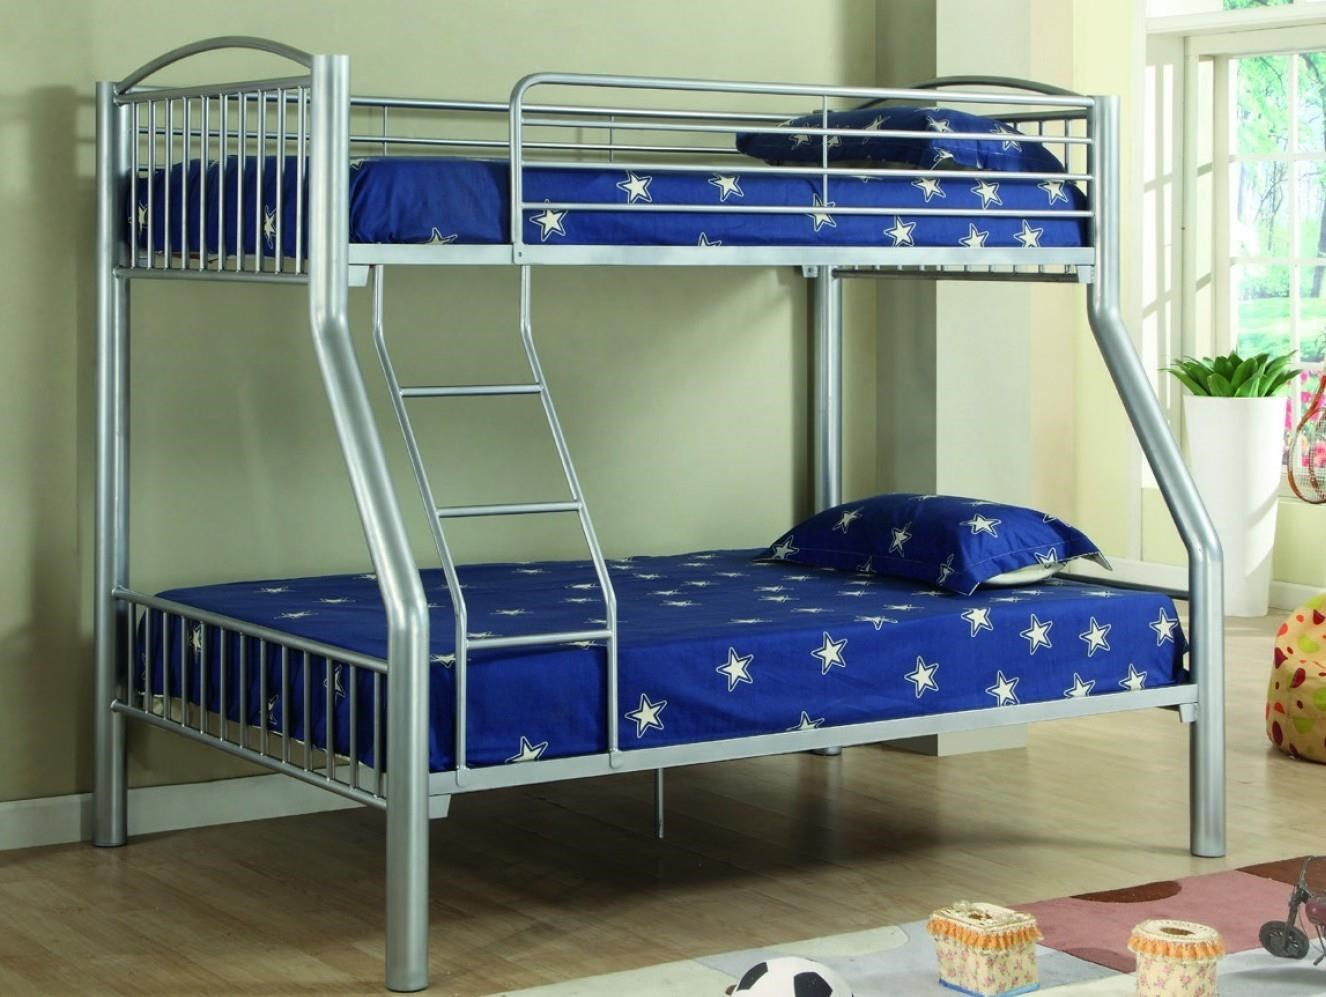 Norden Norden Twin/Full Bunk Bed by Donco Trading Co at Morris Home